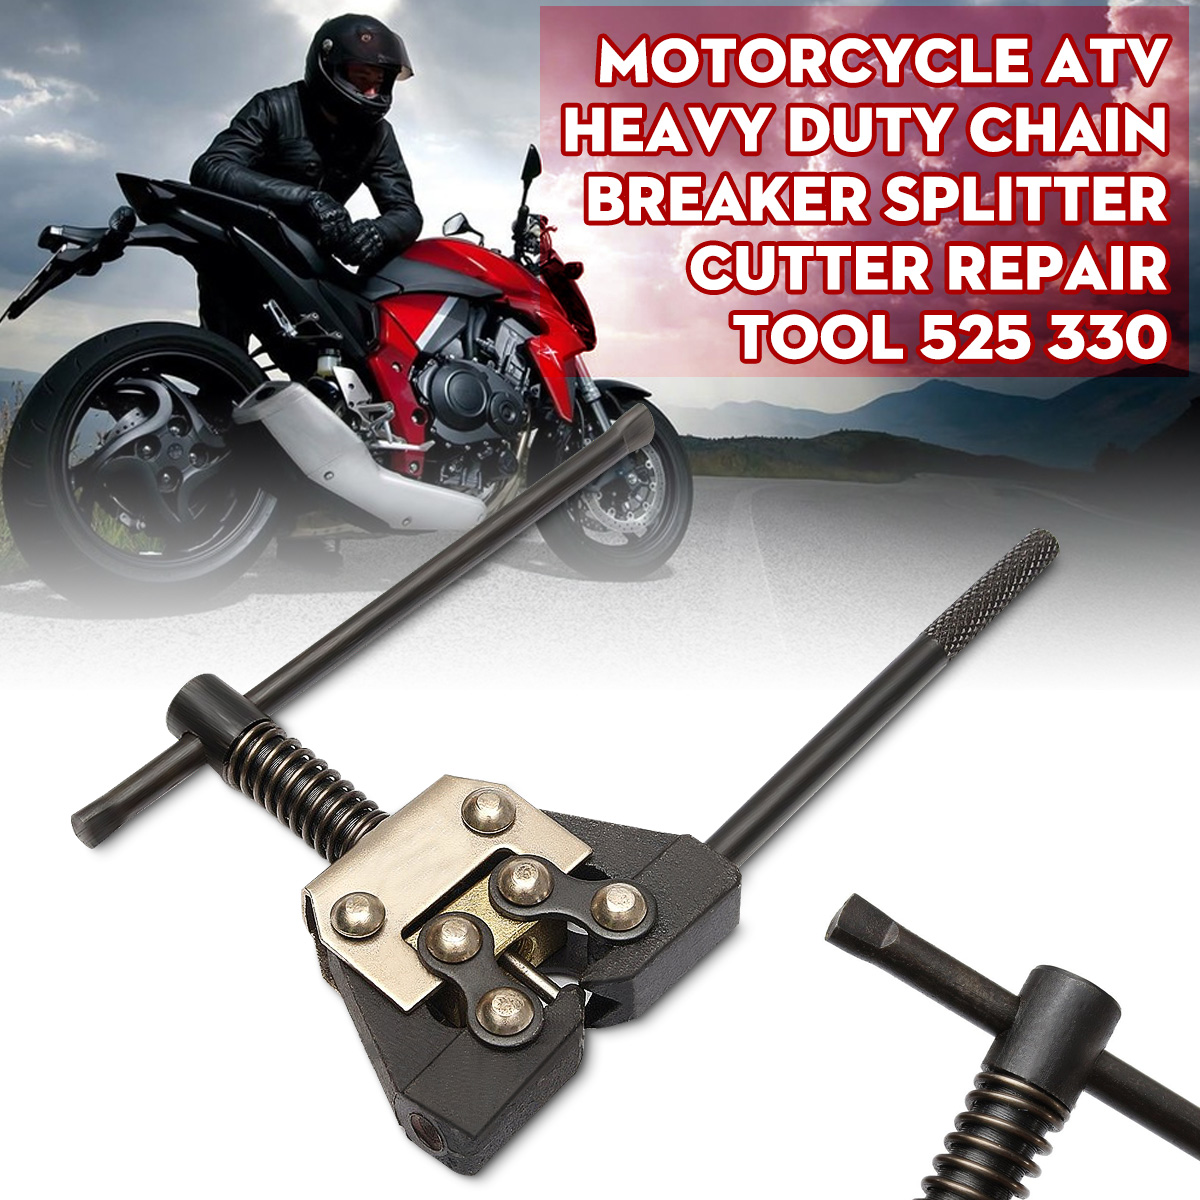 Motorcycle Chain Cutter Breaker Tool ATV Fit 415 420 428 520 530 Links Remover